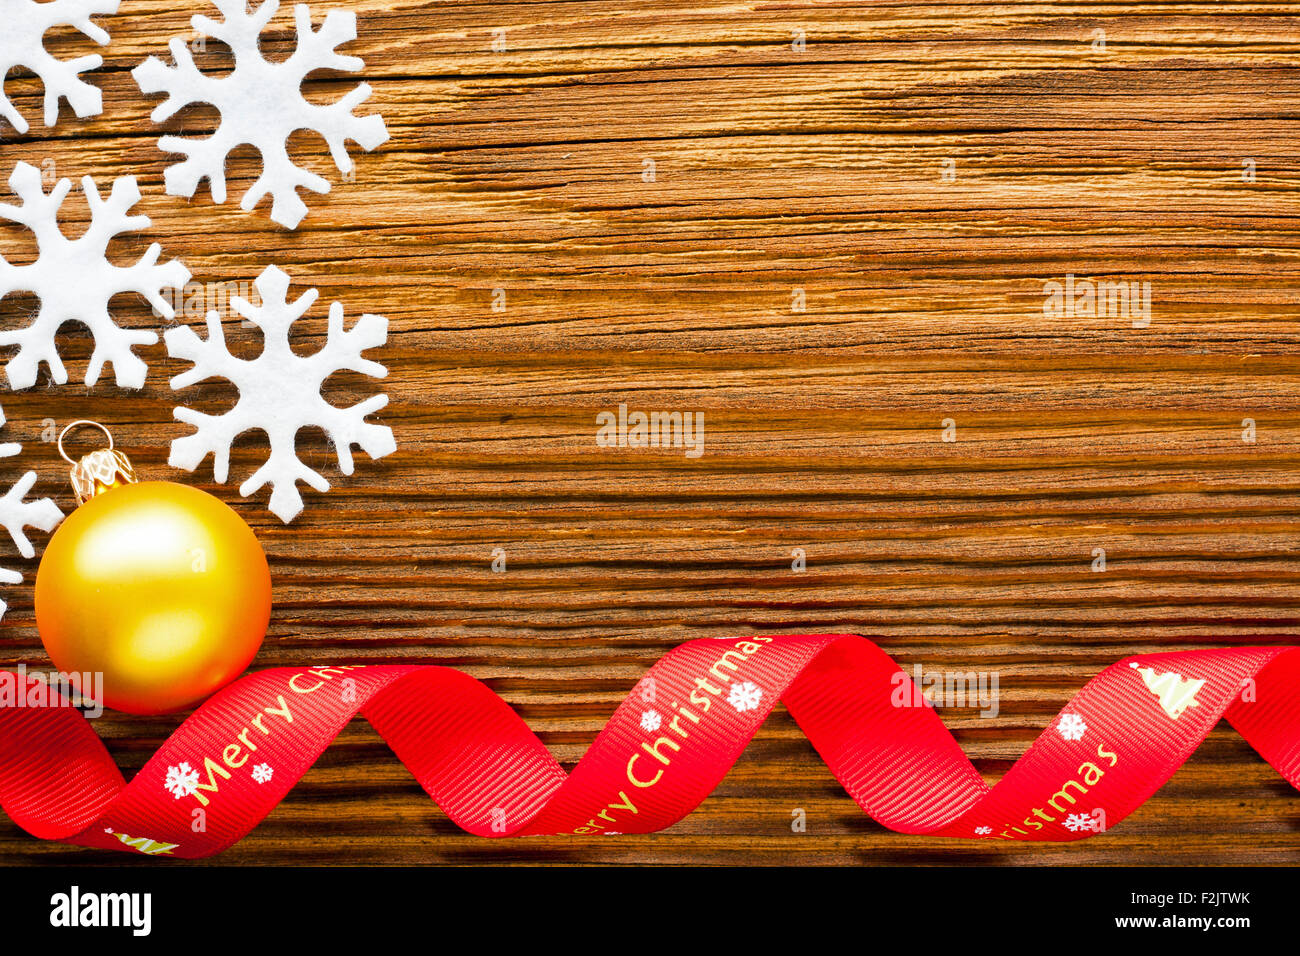 Christmas background - snowflakes and red ribbon on wooden table - Stock Image